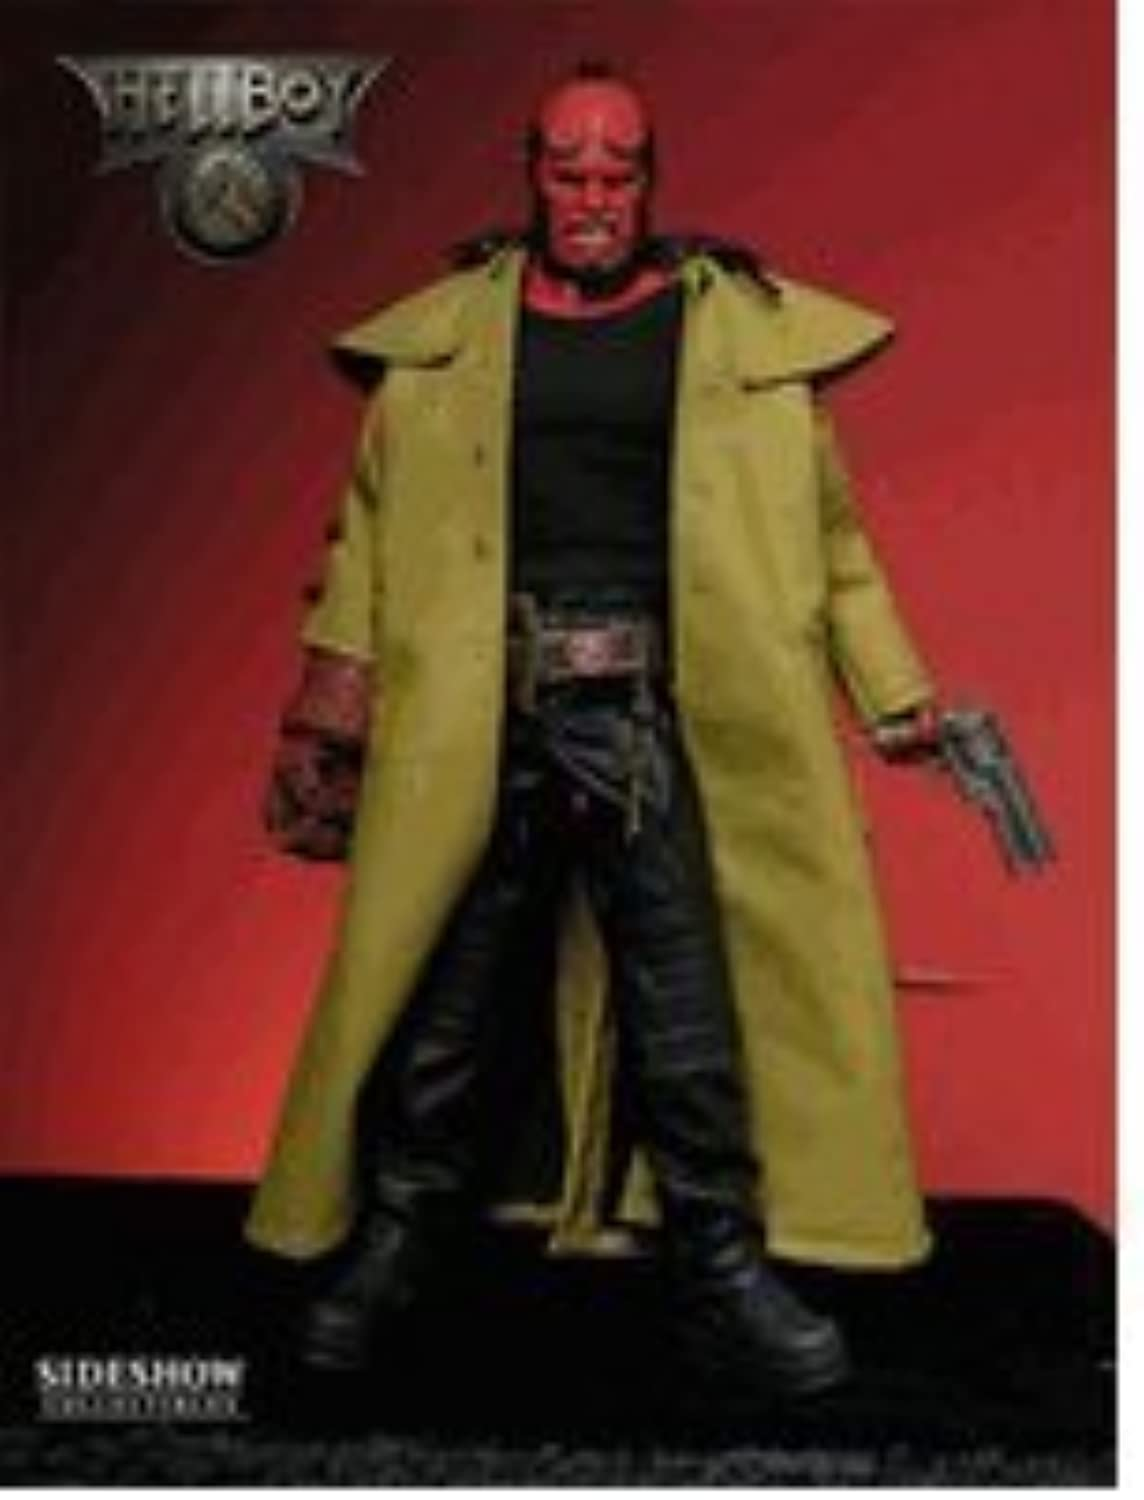 Sideshow Hellboy I Deluxe 12 Figure by Hellboy